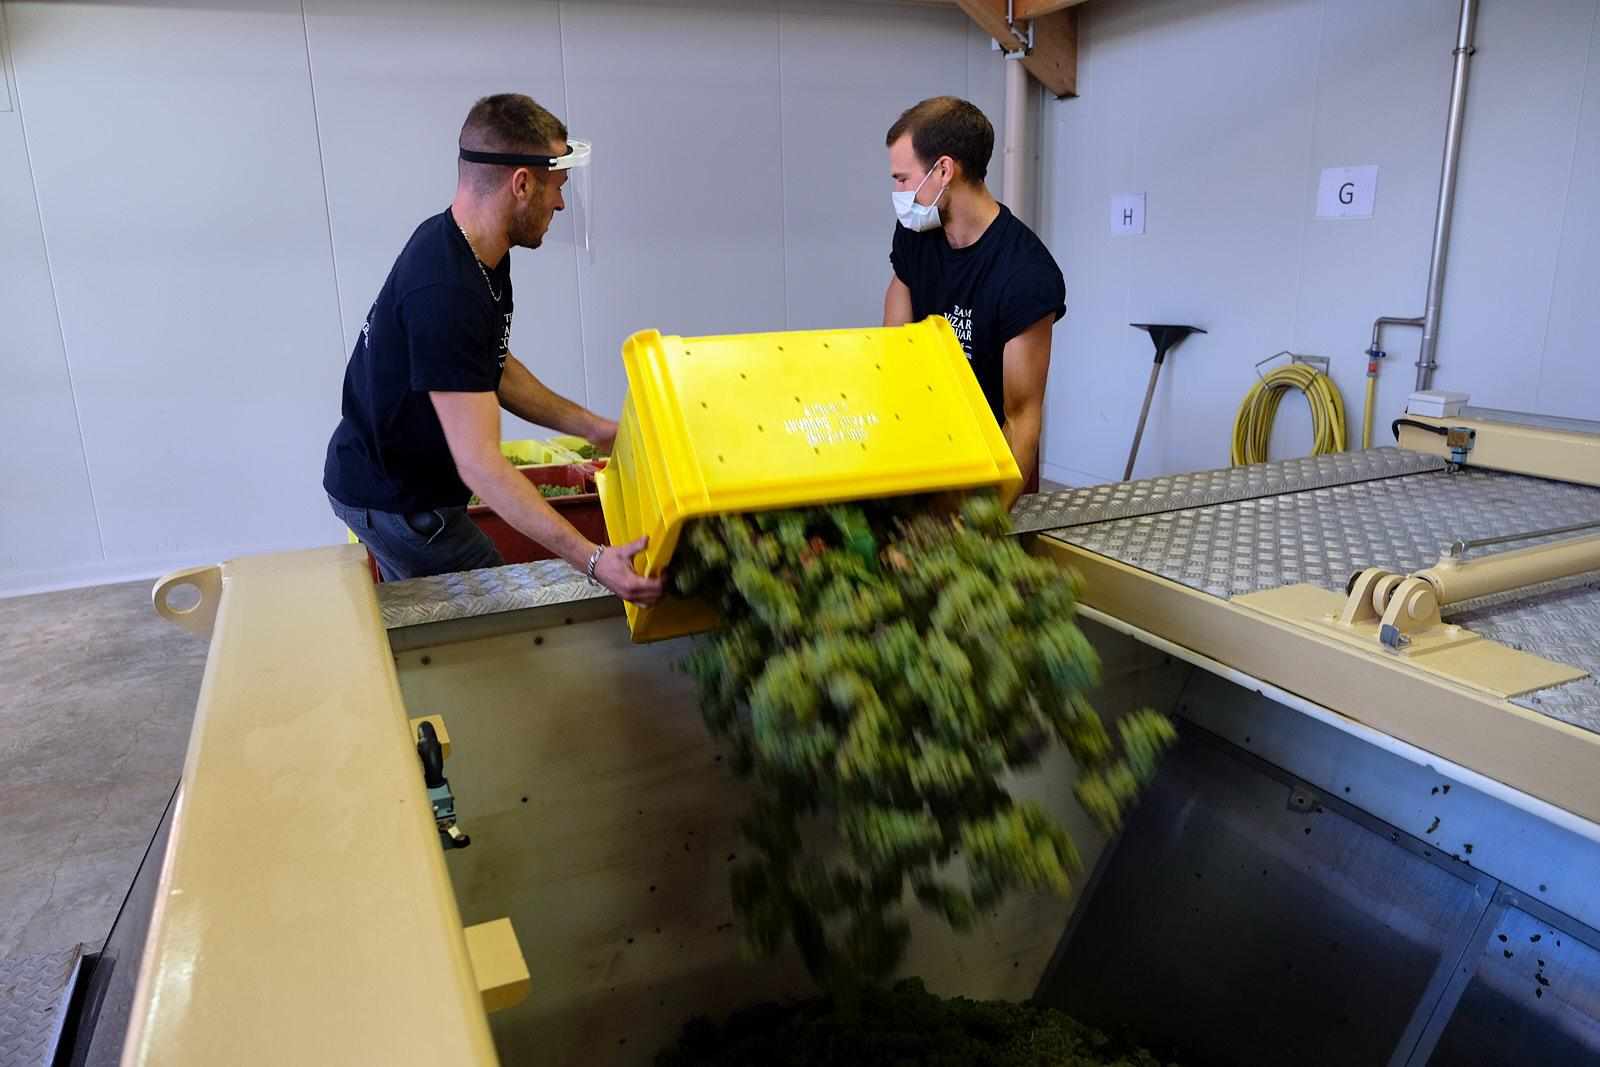 Workers of the Vazart-Coquart & fils Champagne brand pour freshly picked grapes into vats to be pressed in Chouilly.